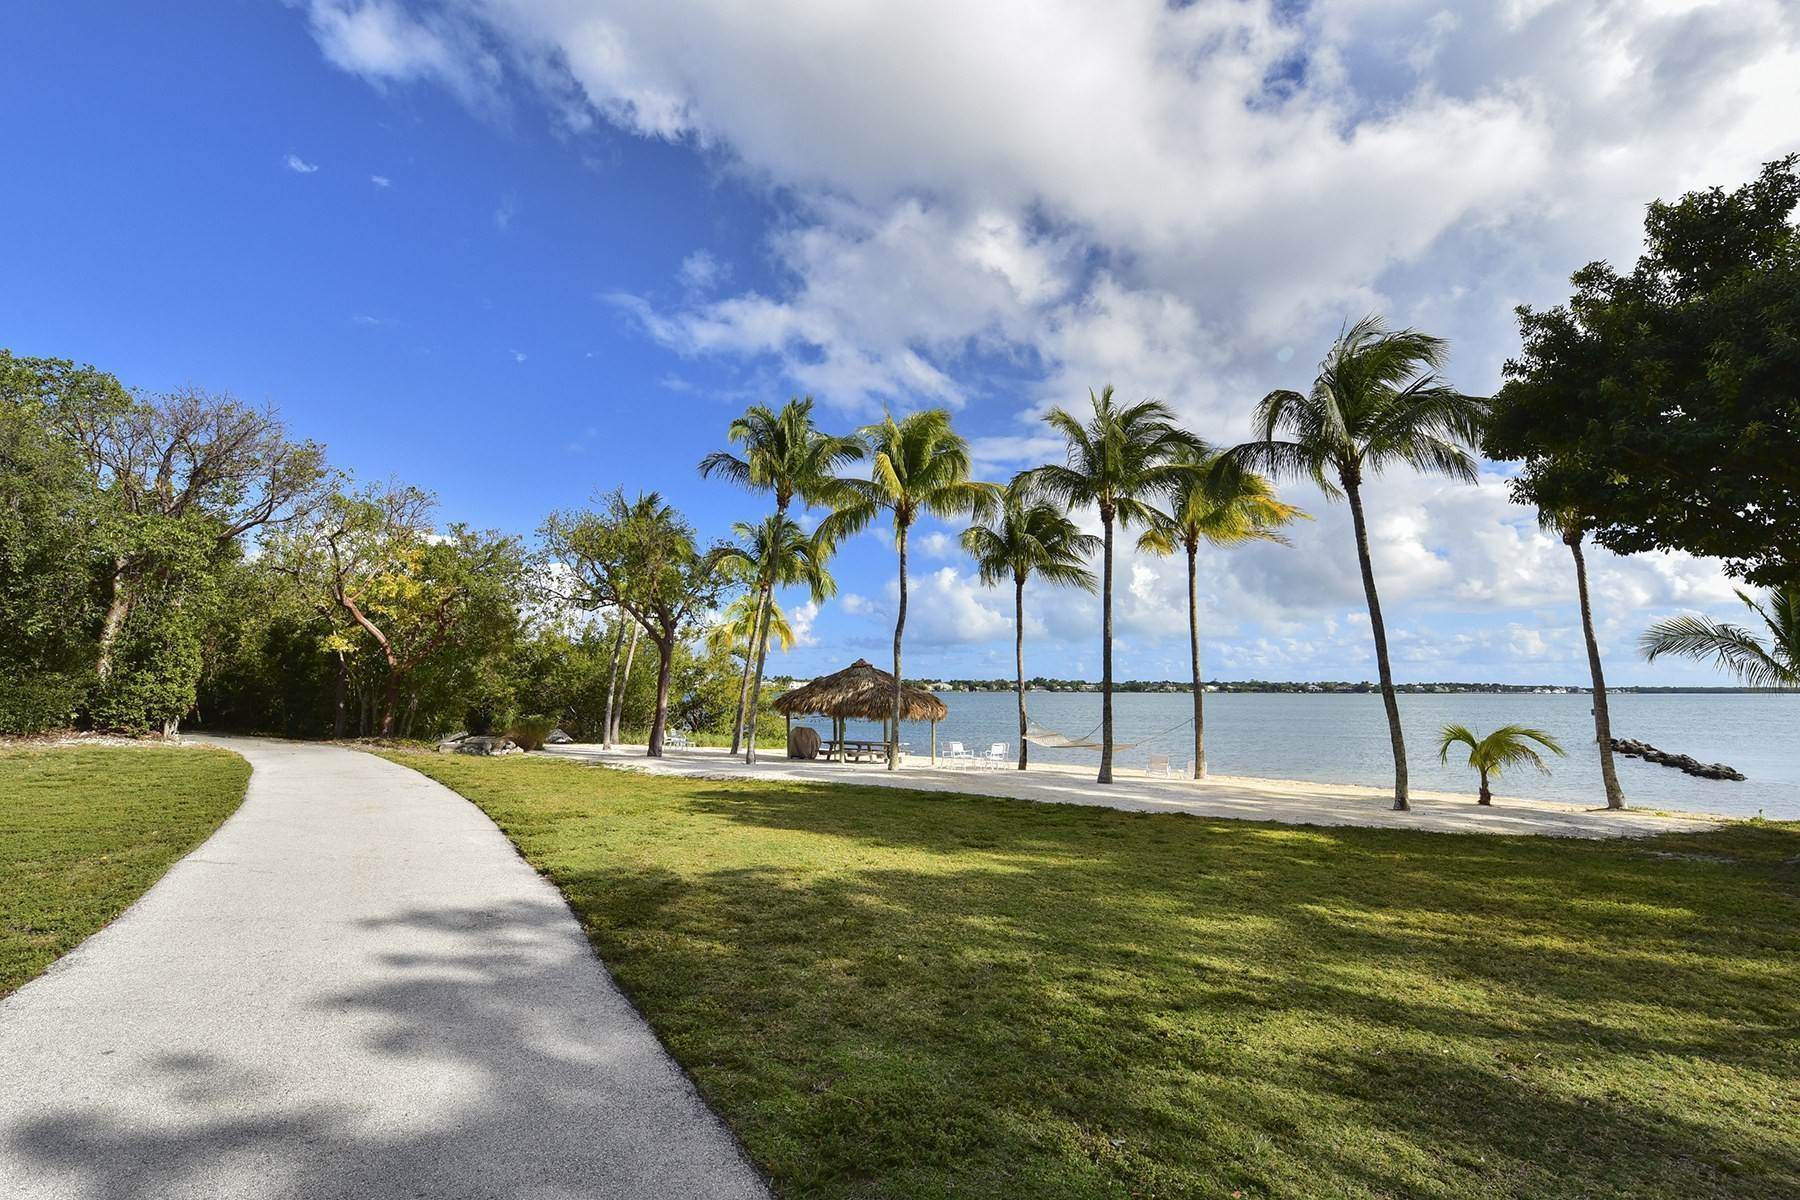 9. Property for Sale at Pumpkin Key - Private Island, Key Largo, FL Pumpkin Key - Private Island Key Largo, Florida 33037 United States